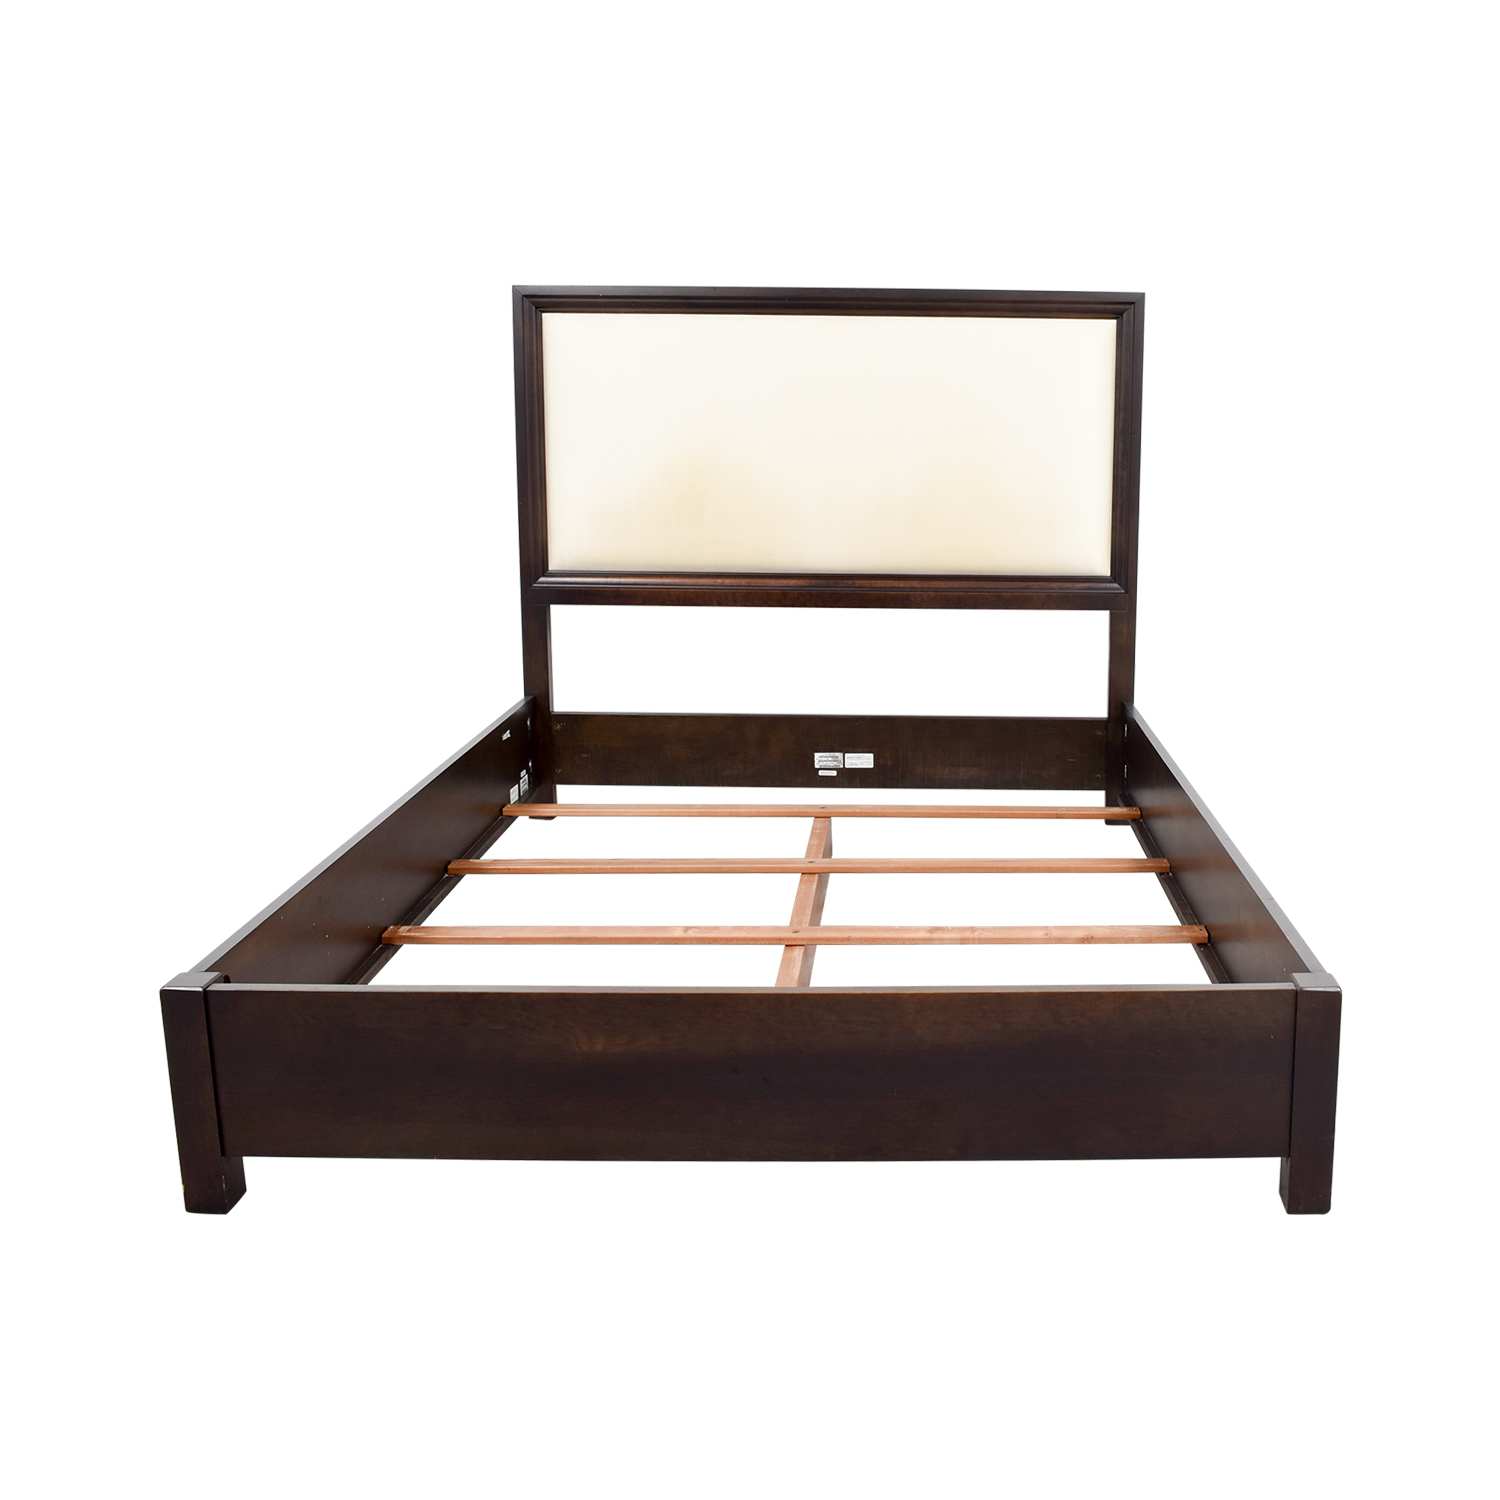 Ethan Allen Ethan Allen Wood and Cream Upholstered Queen Bed Frame coupon